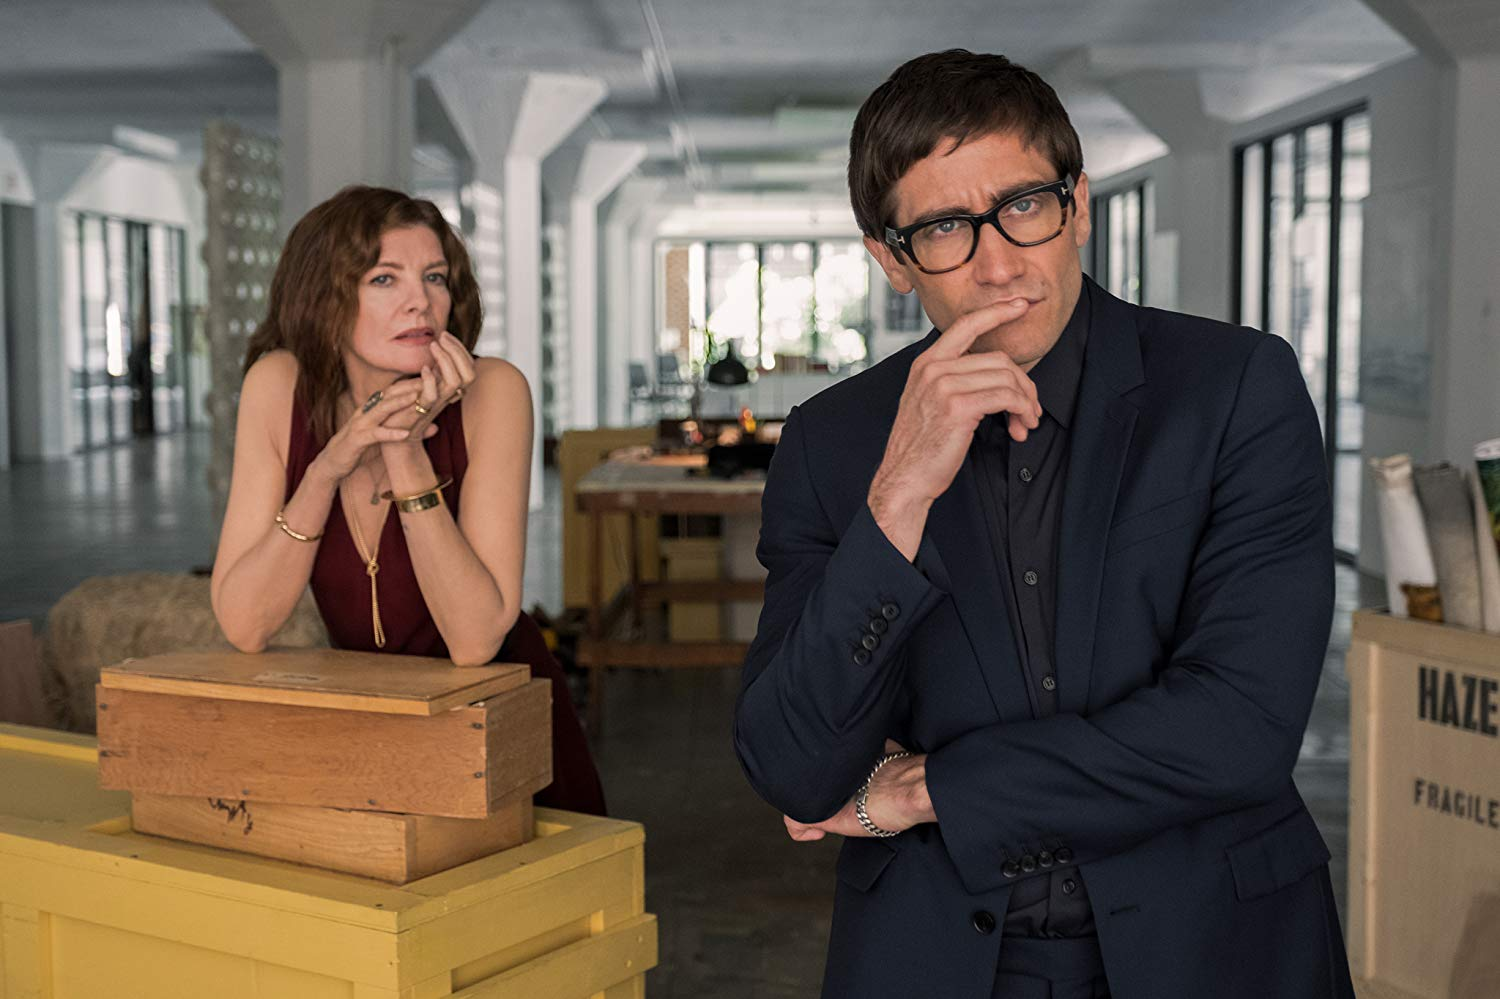 Gallery owner Rene Russo and art critic Jake Gyllenhaal peruse the paintings in Velvet Buzzsaw (2019)